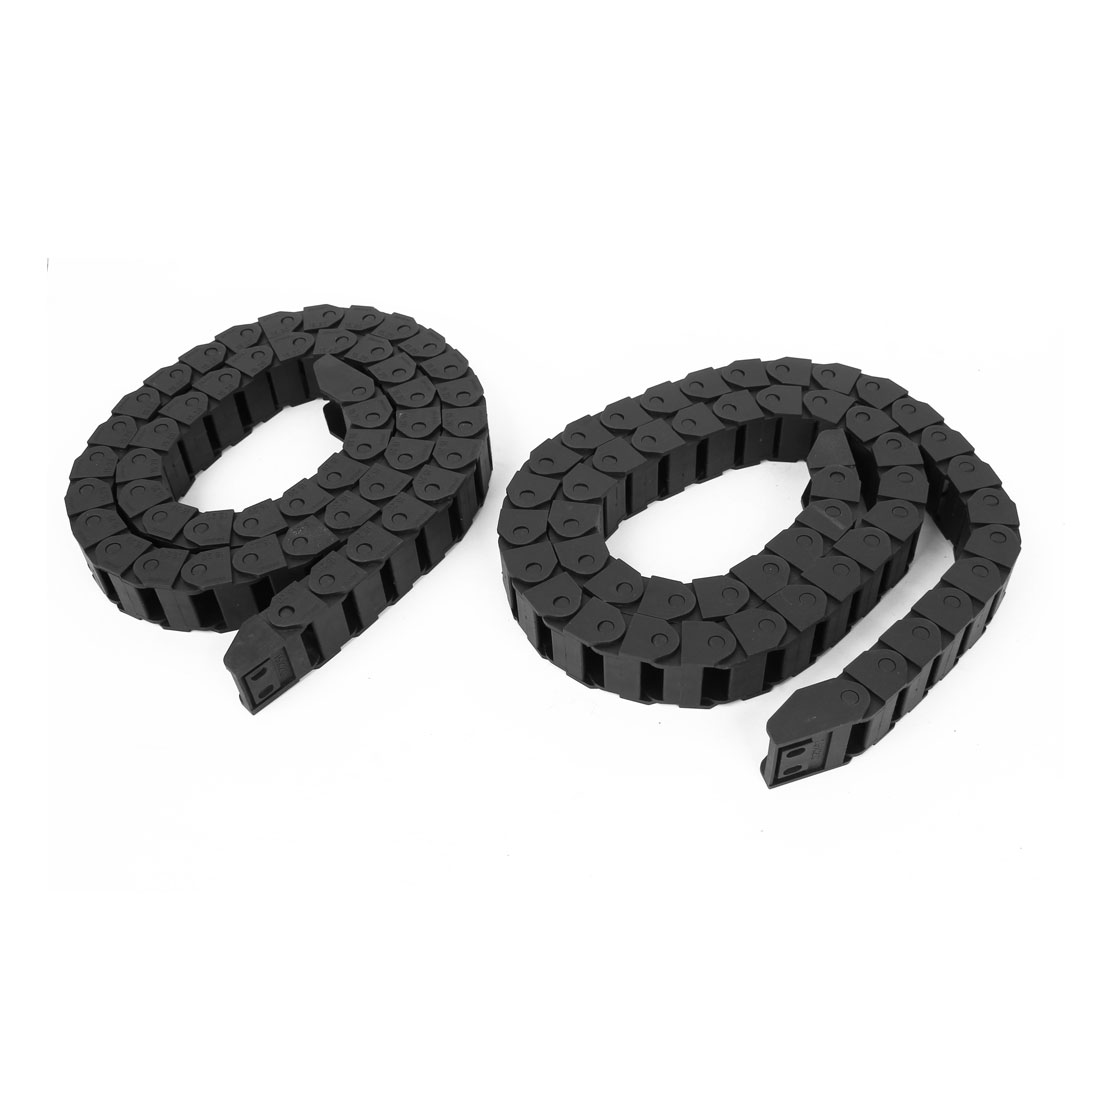 2 Pcs Black Plastic Drag Chain Cable Carrier 15 x 20mm for CNC Machine